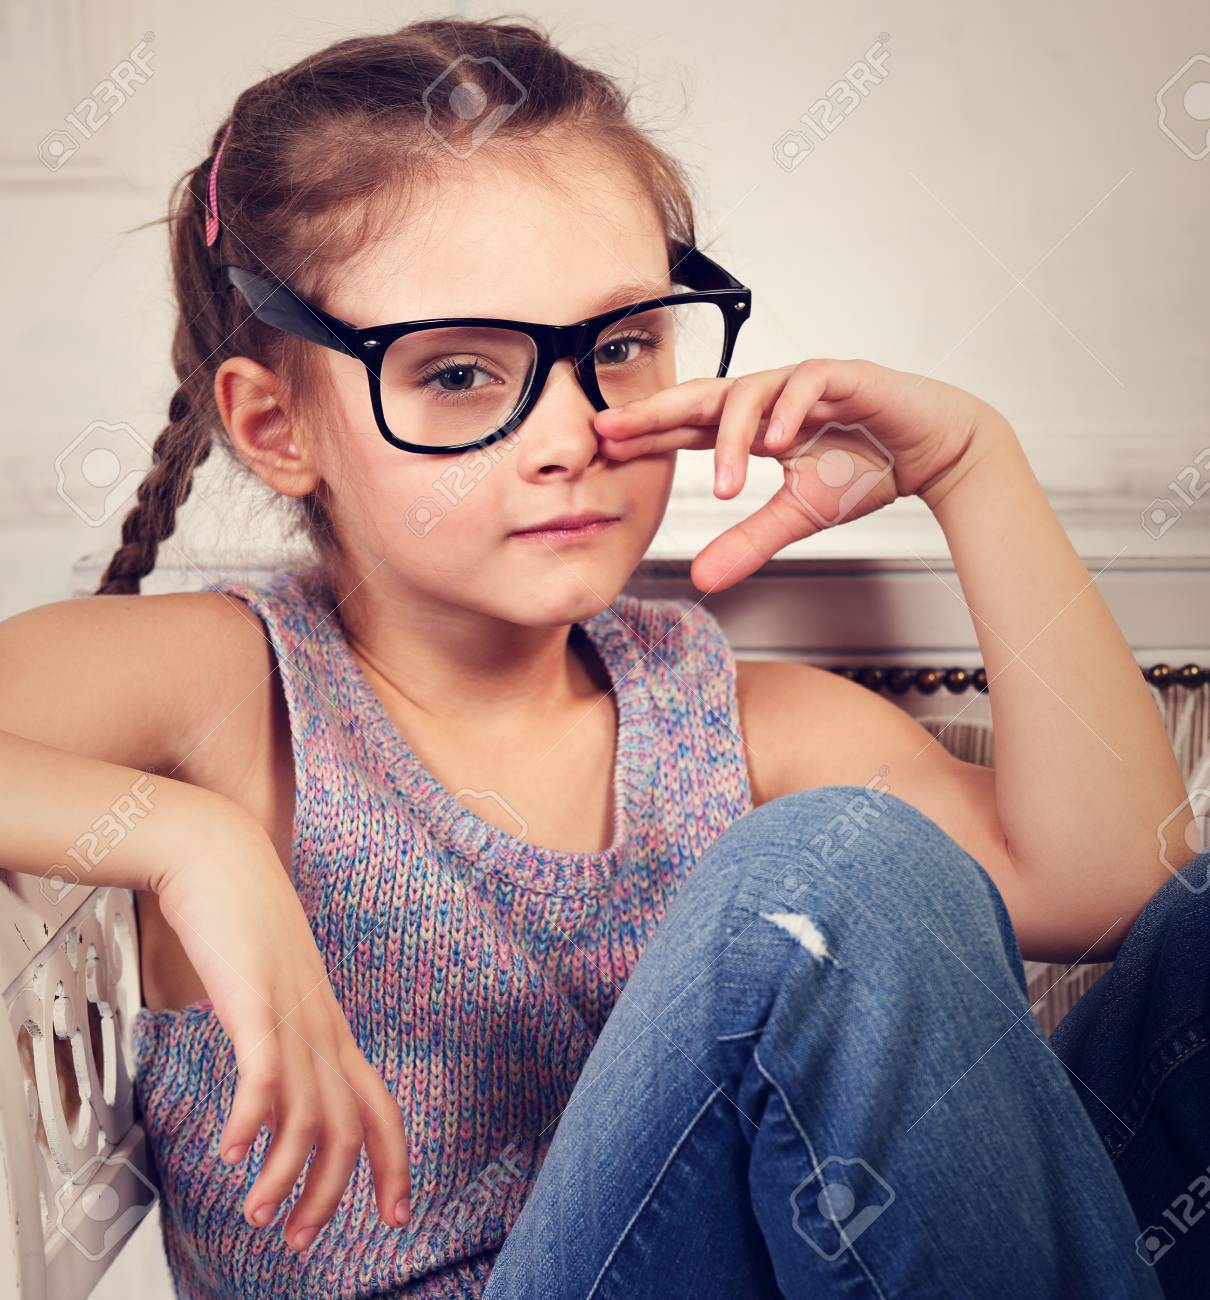 57bfc2d22 Serious emotional calm kid girl in eyeglasses looking and thinking about  life problem in blue jeans